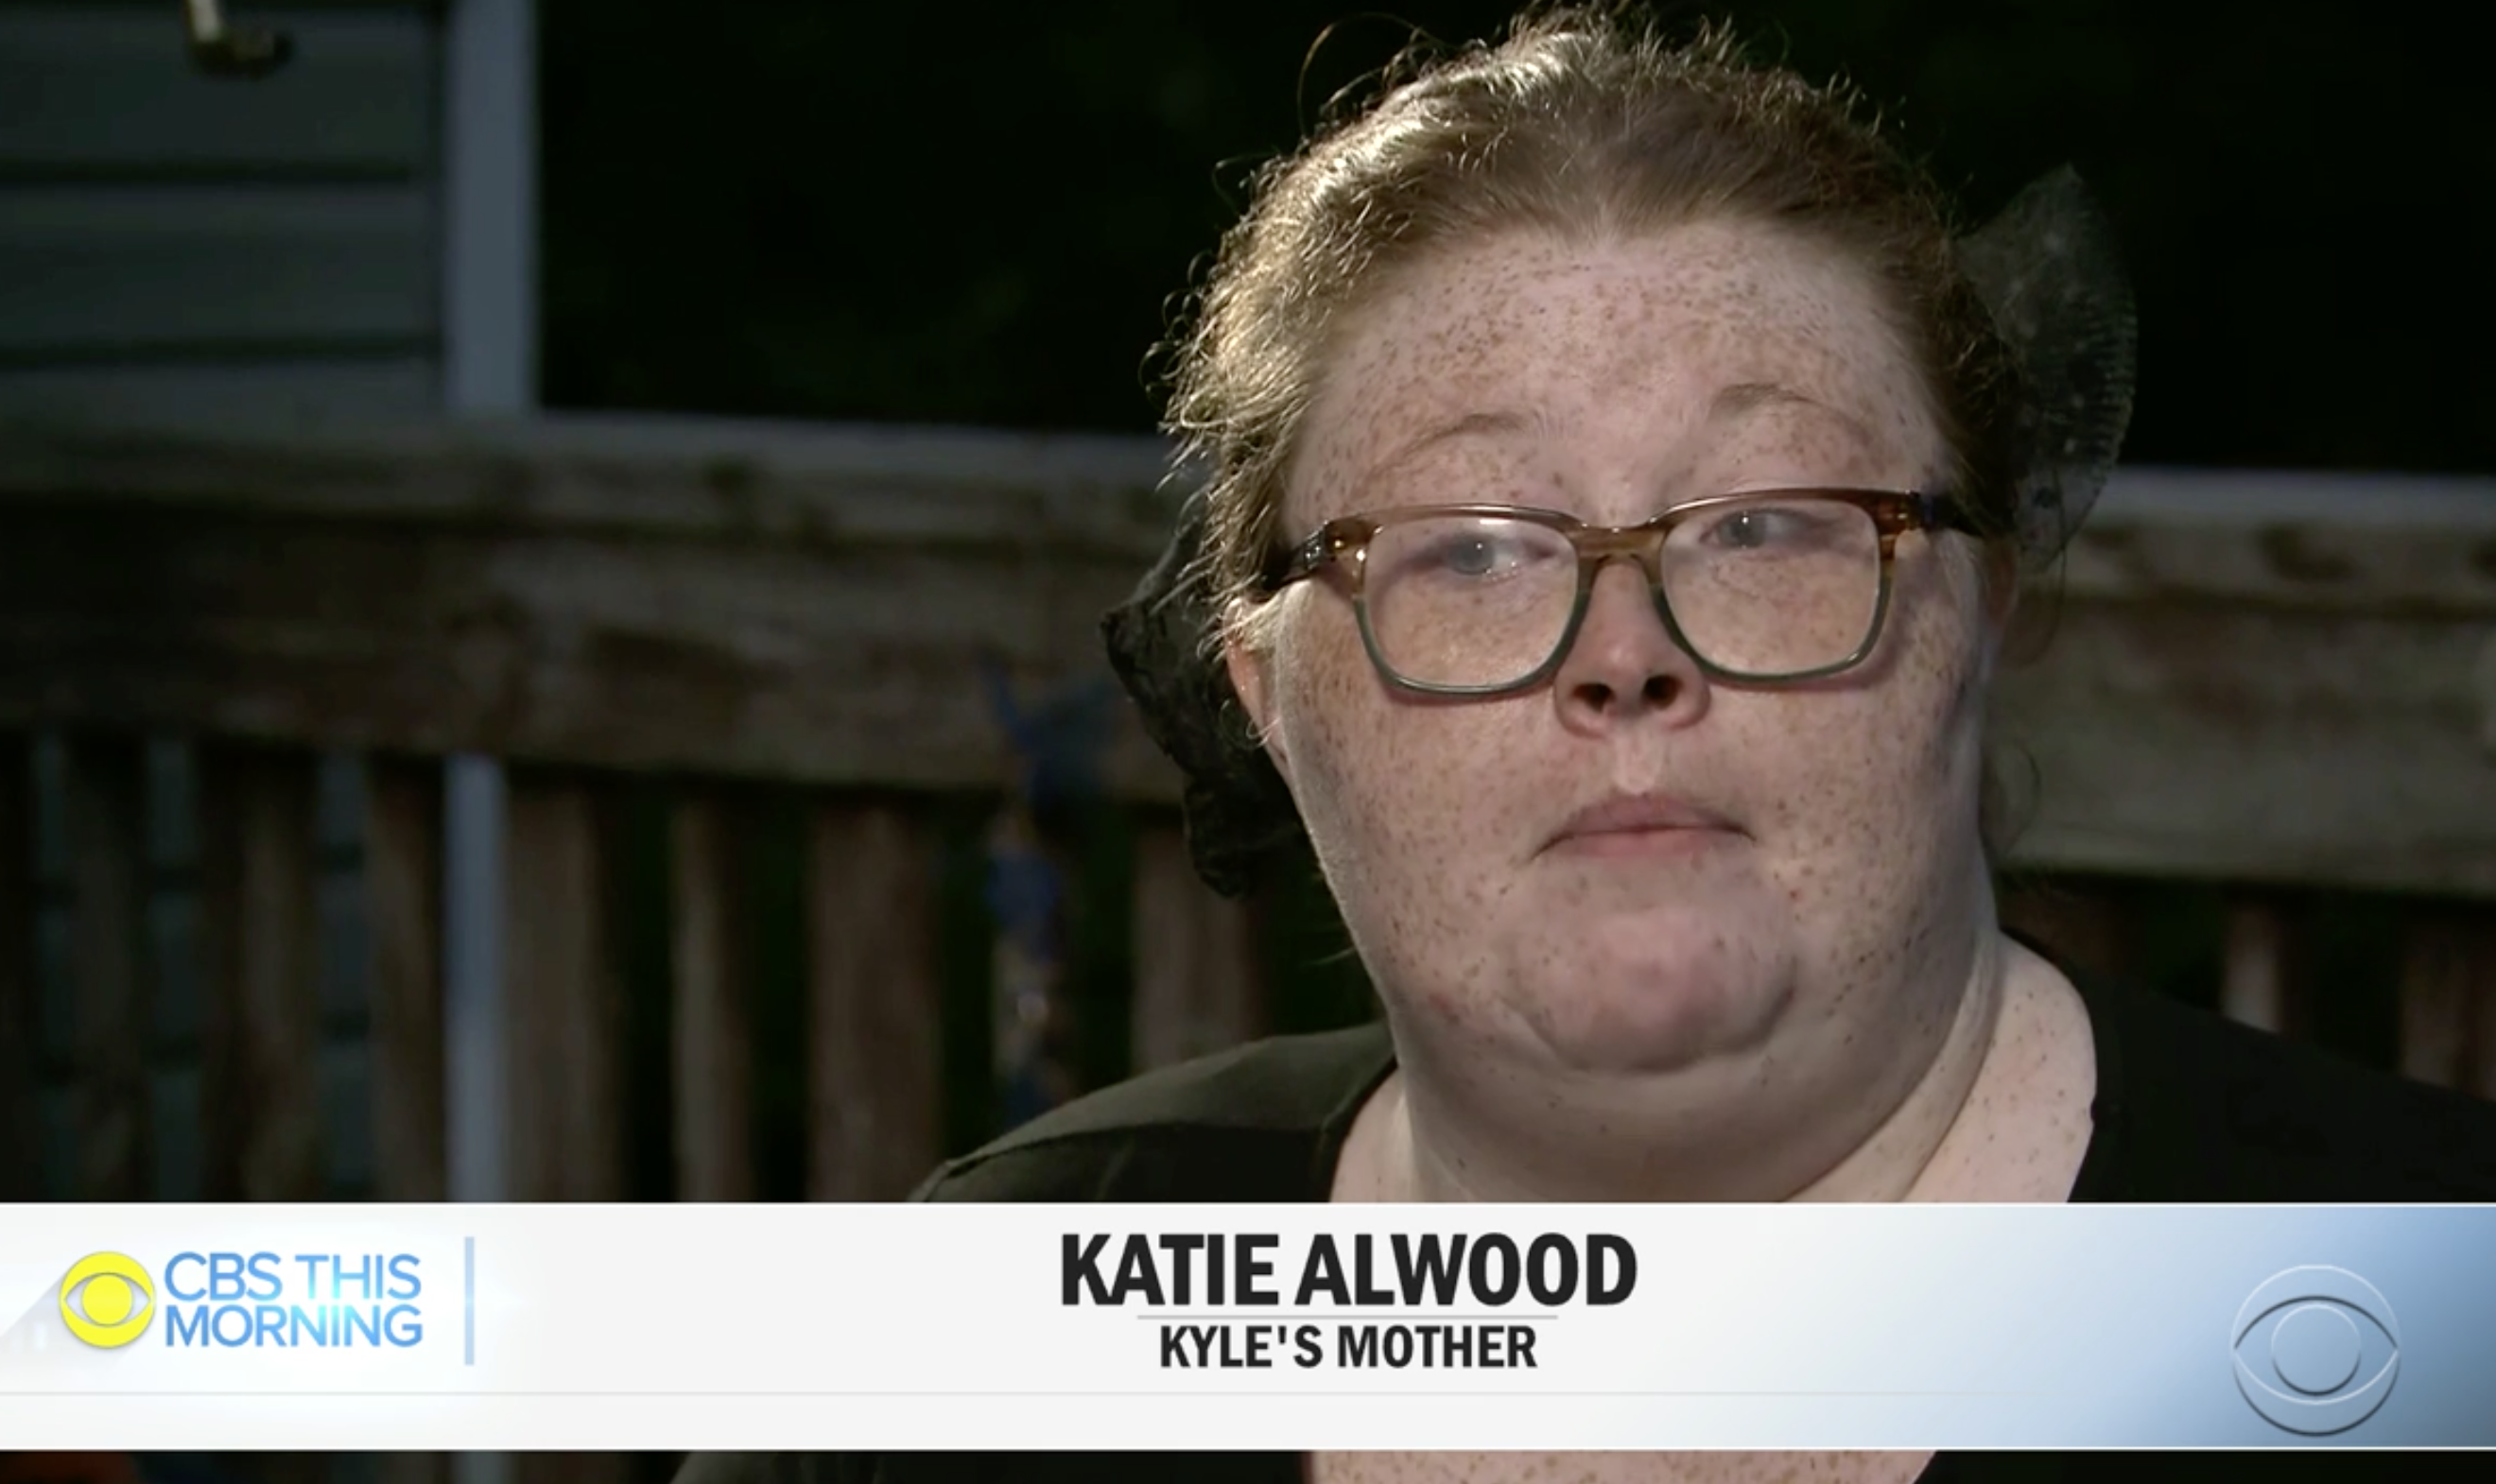 Katie Alwood said she had forgiven her son, who has been charged with five counts of murder (Picture: CBS This Morning)